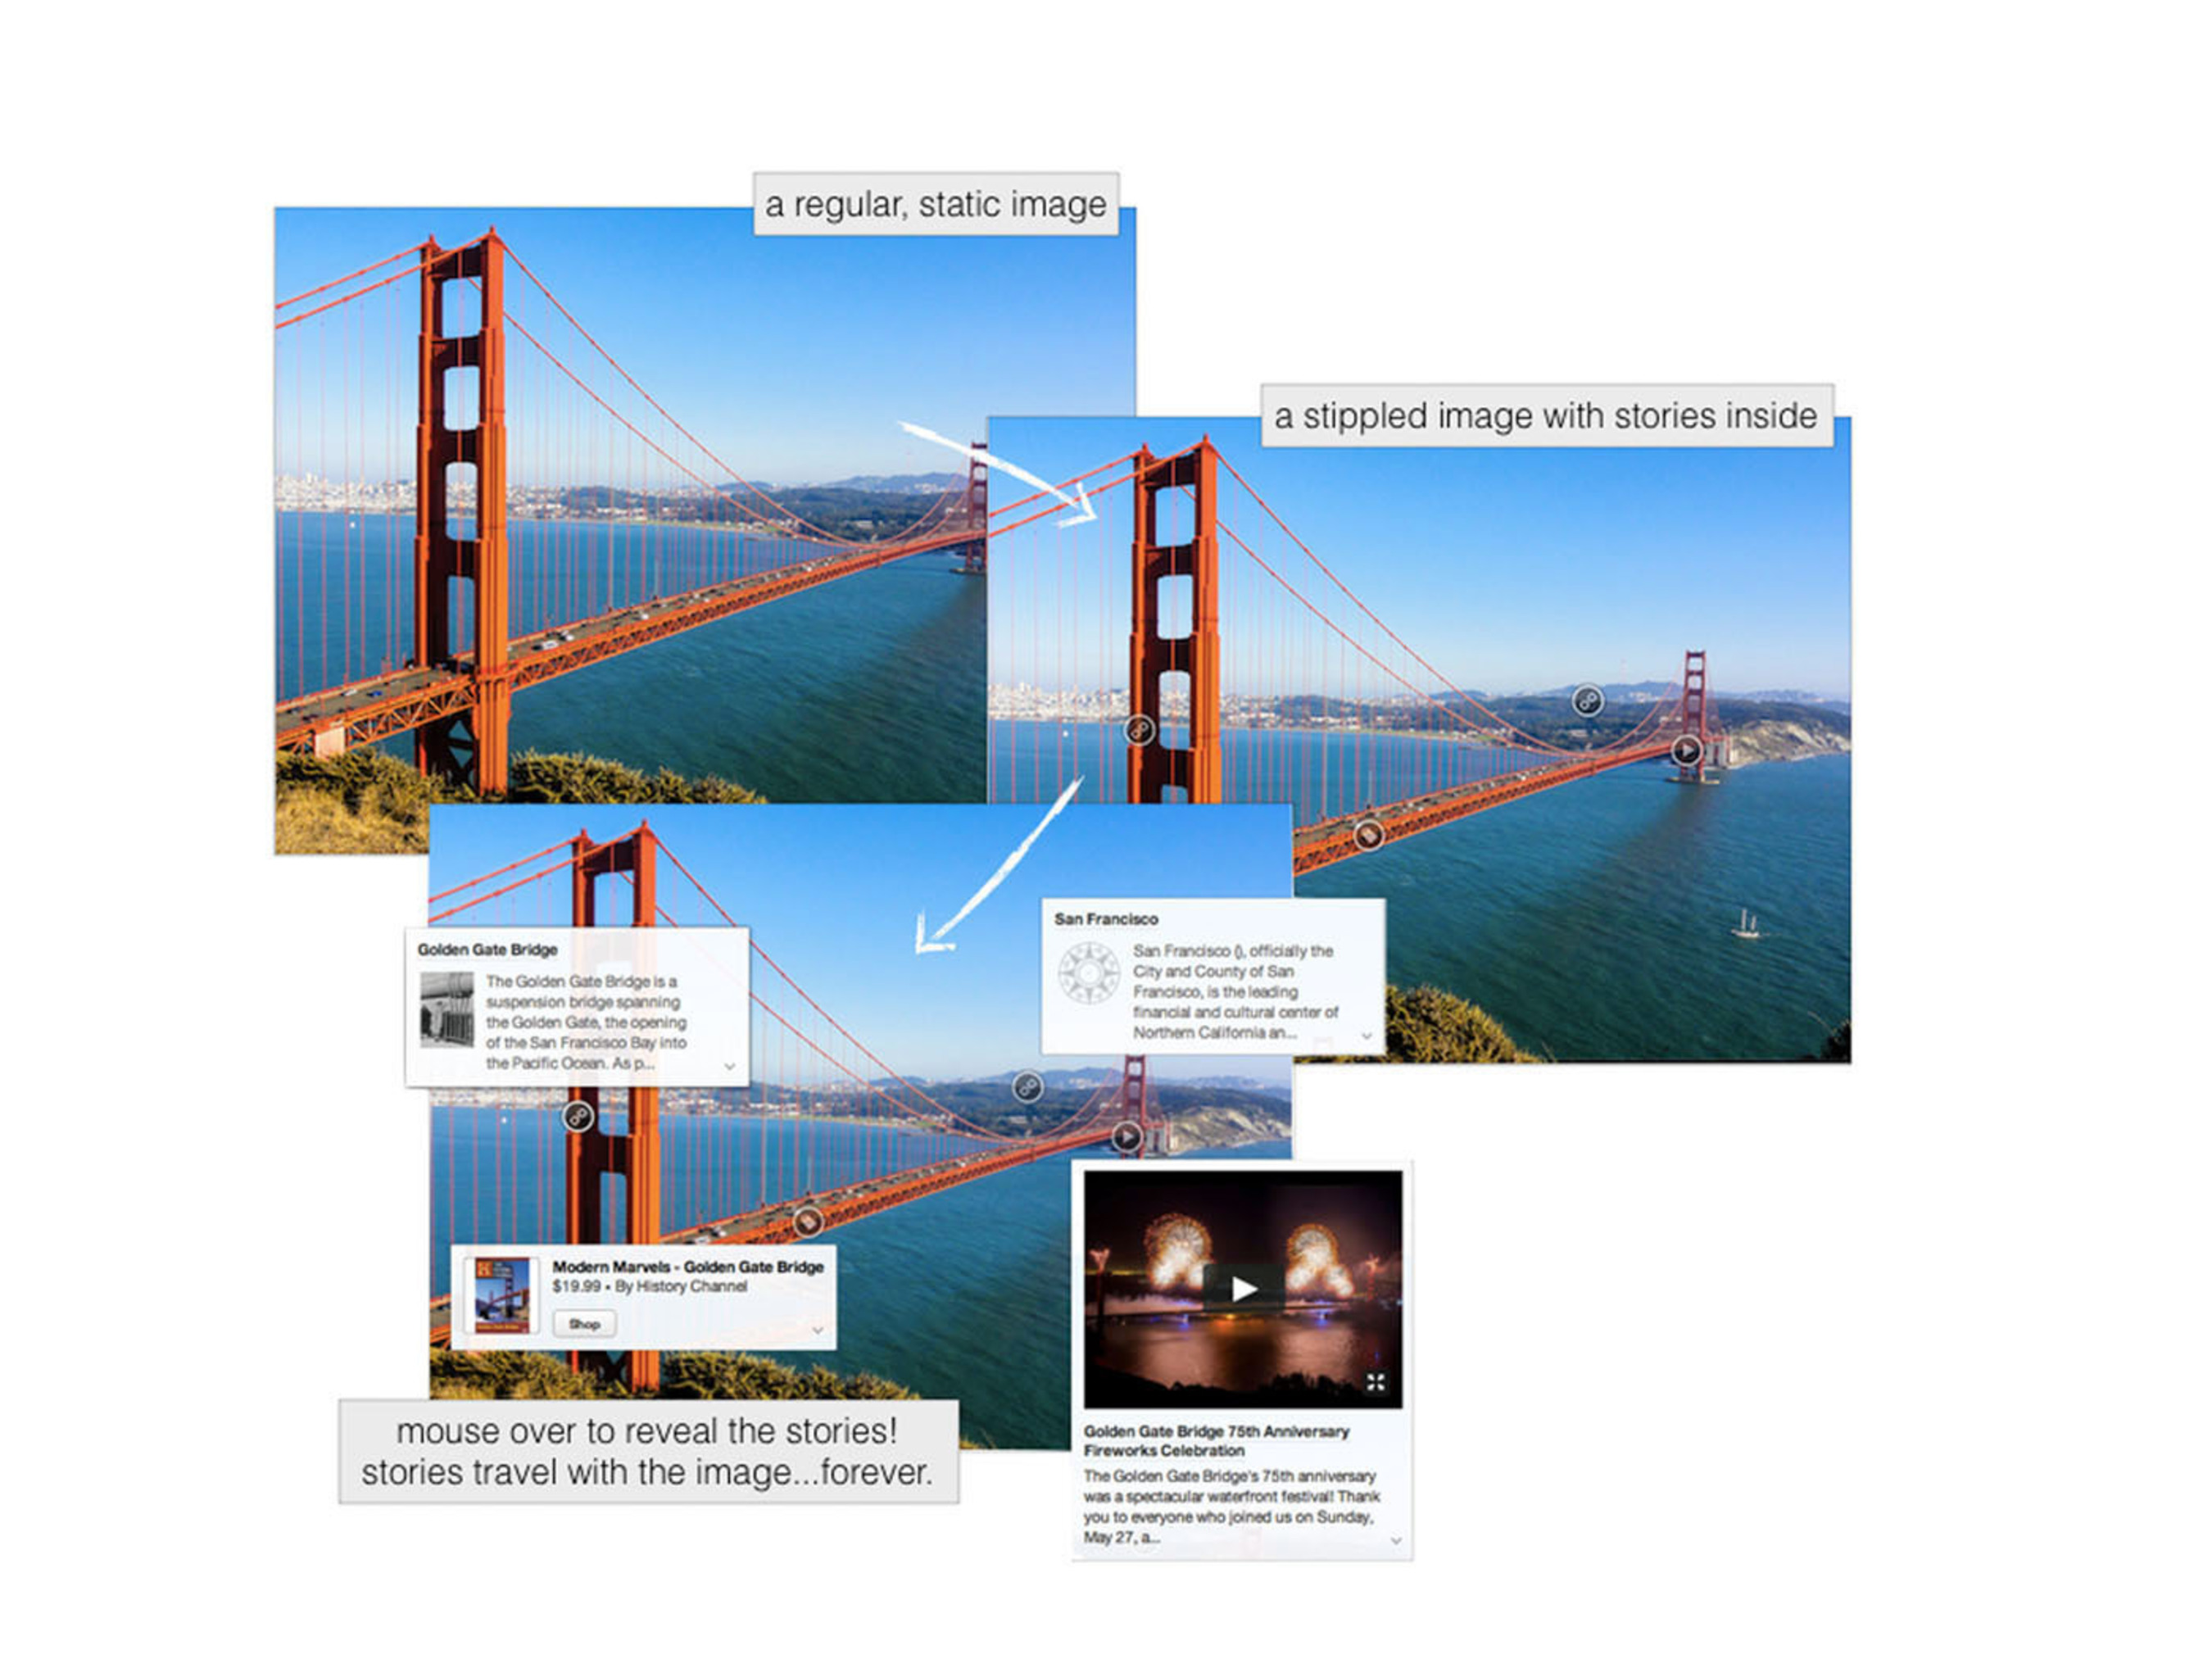 Stipple Invents the 'Intelligent Image' to Permanently Reconnect Stakeholders With Their Images,